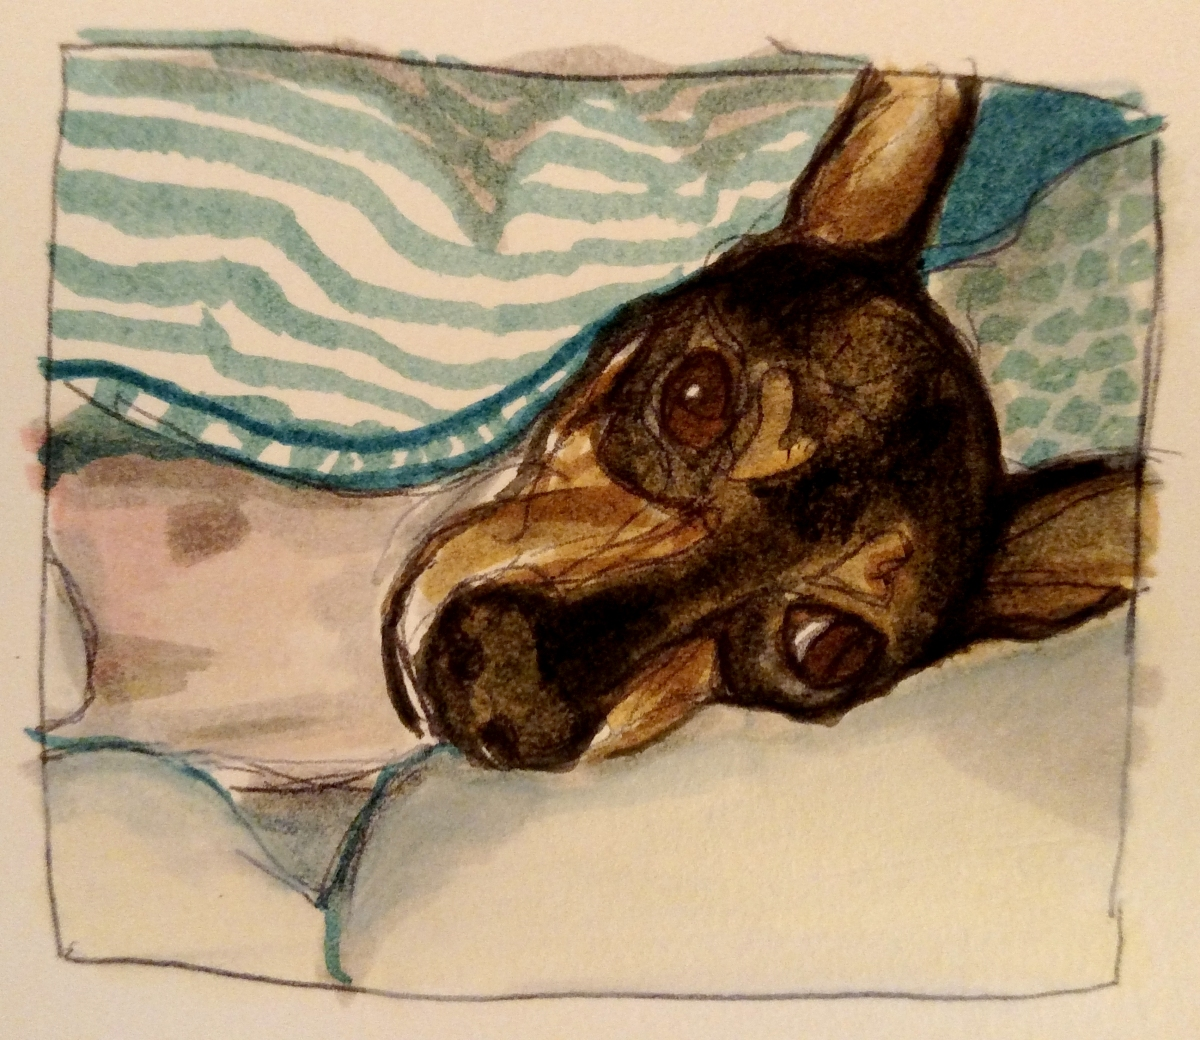 illustration of a toy fox terrier dog under a green striped blanket